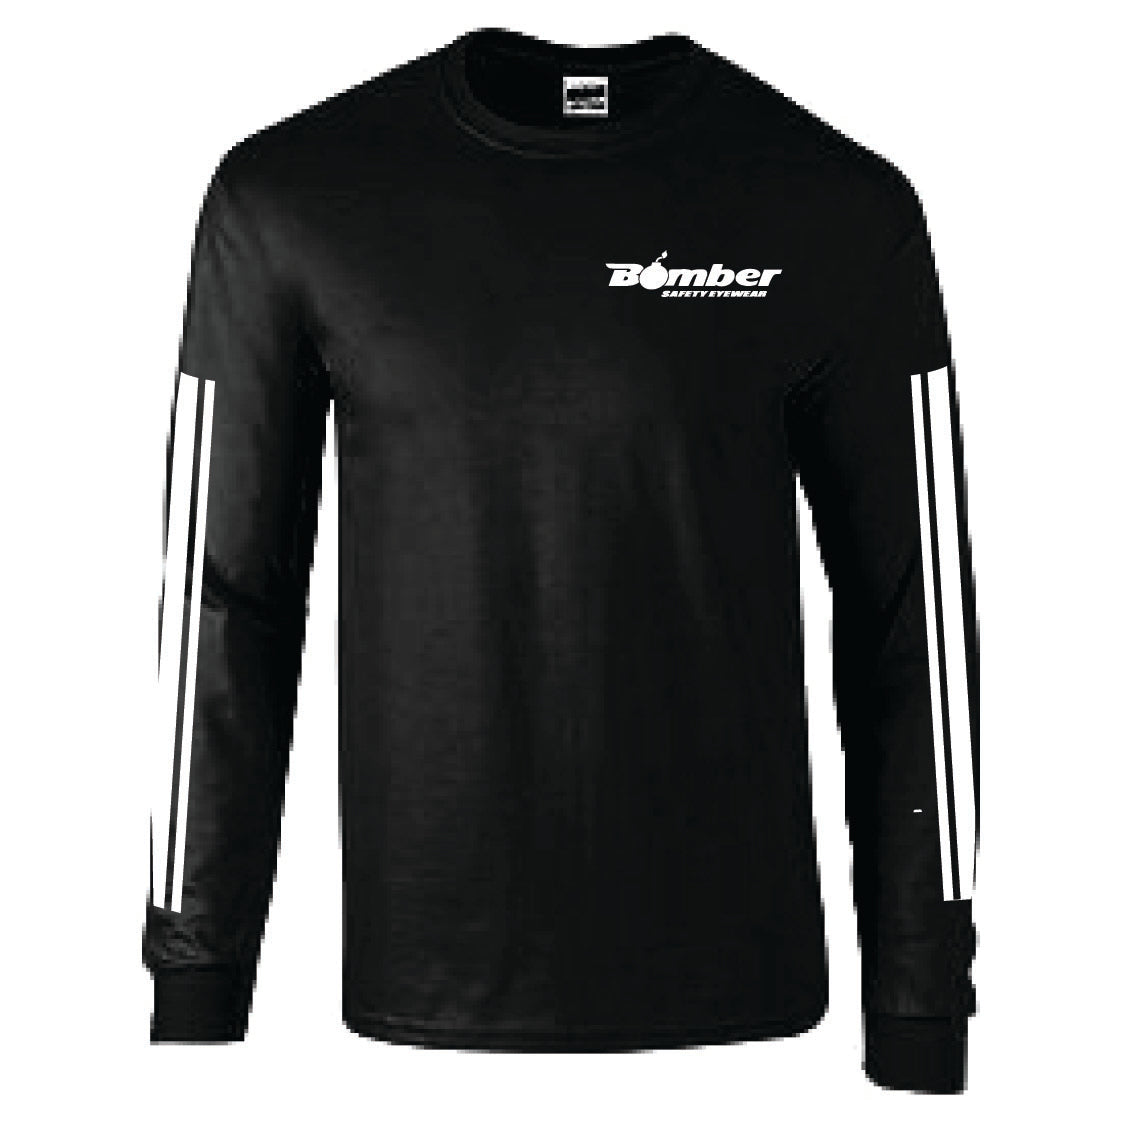 BLACK RACING STRIPE LONG SLEEVE T-SHIRT